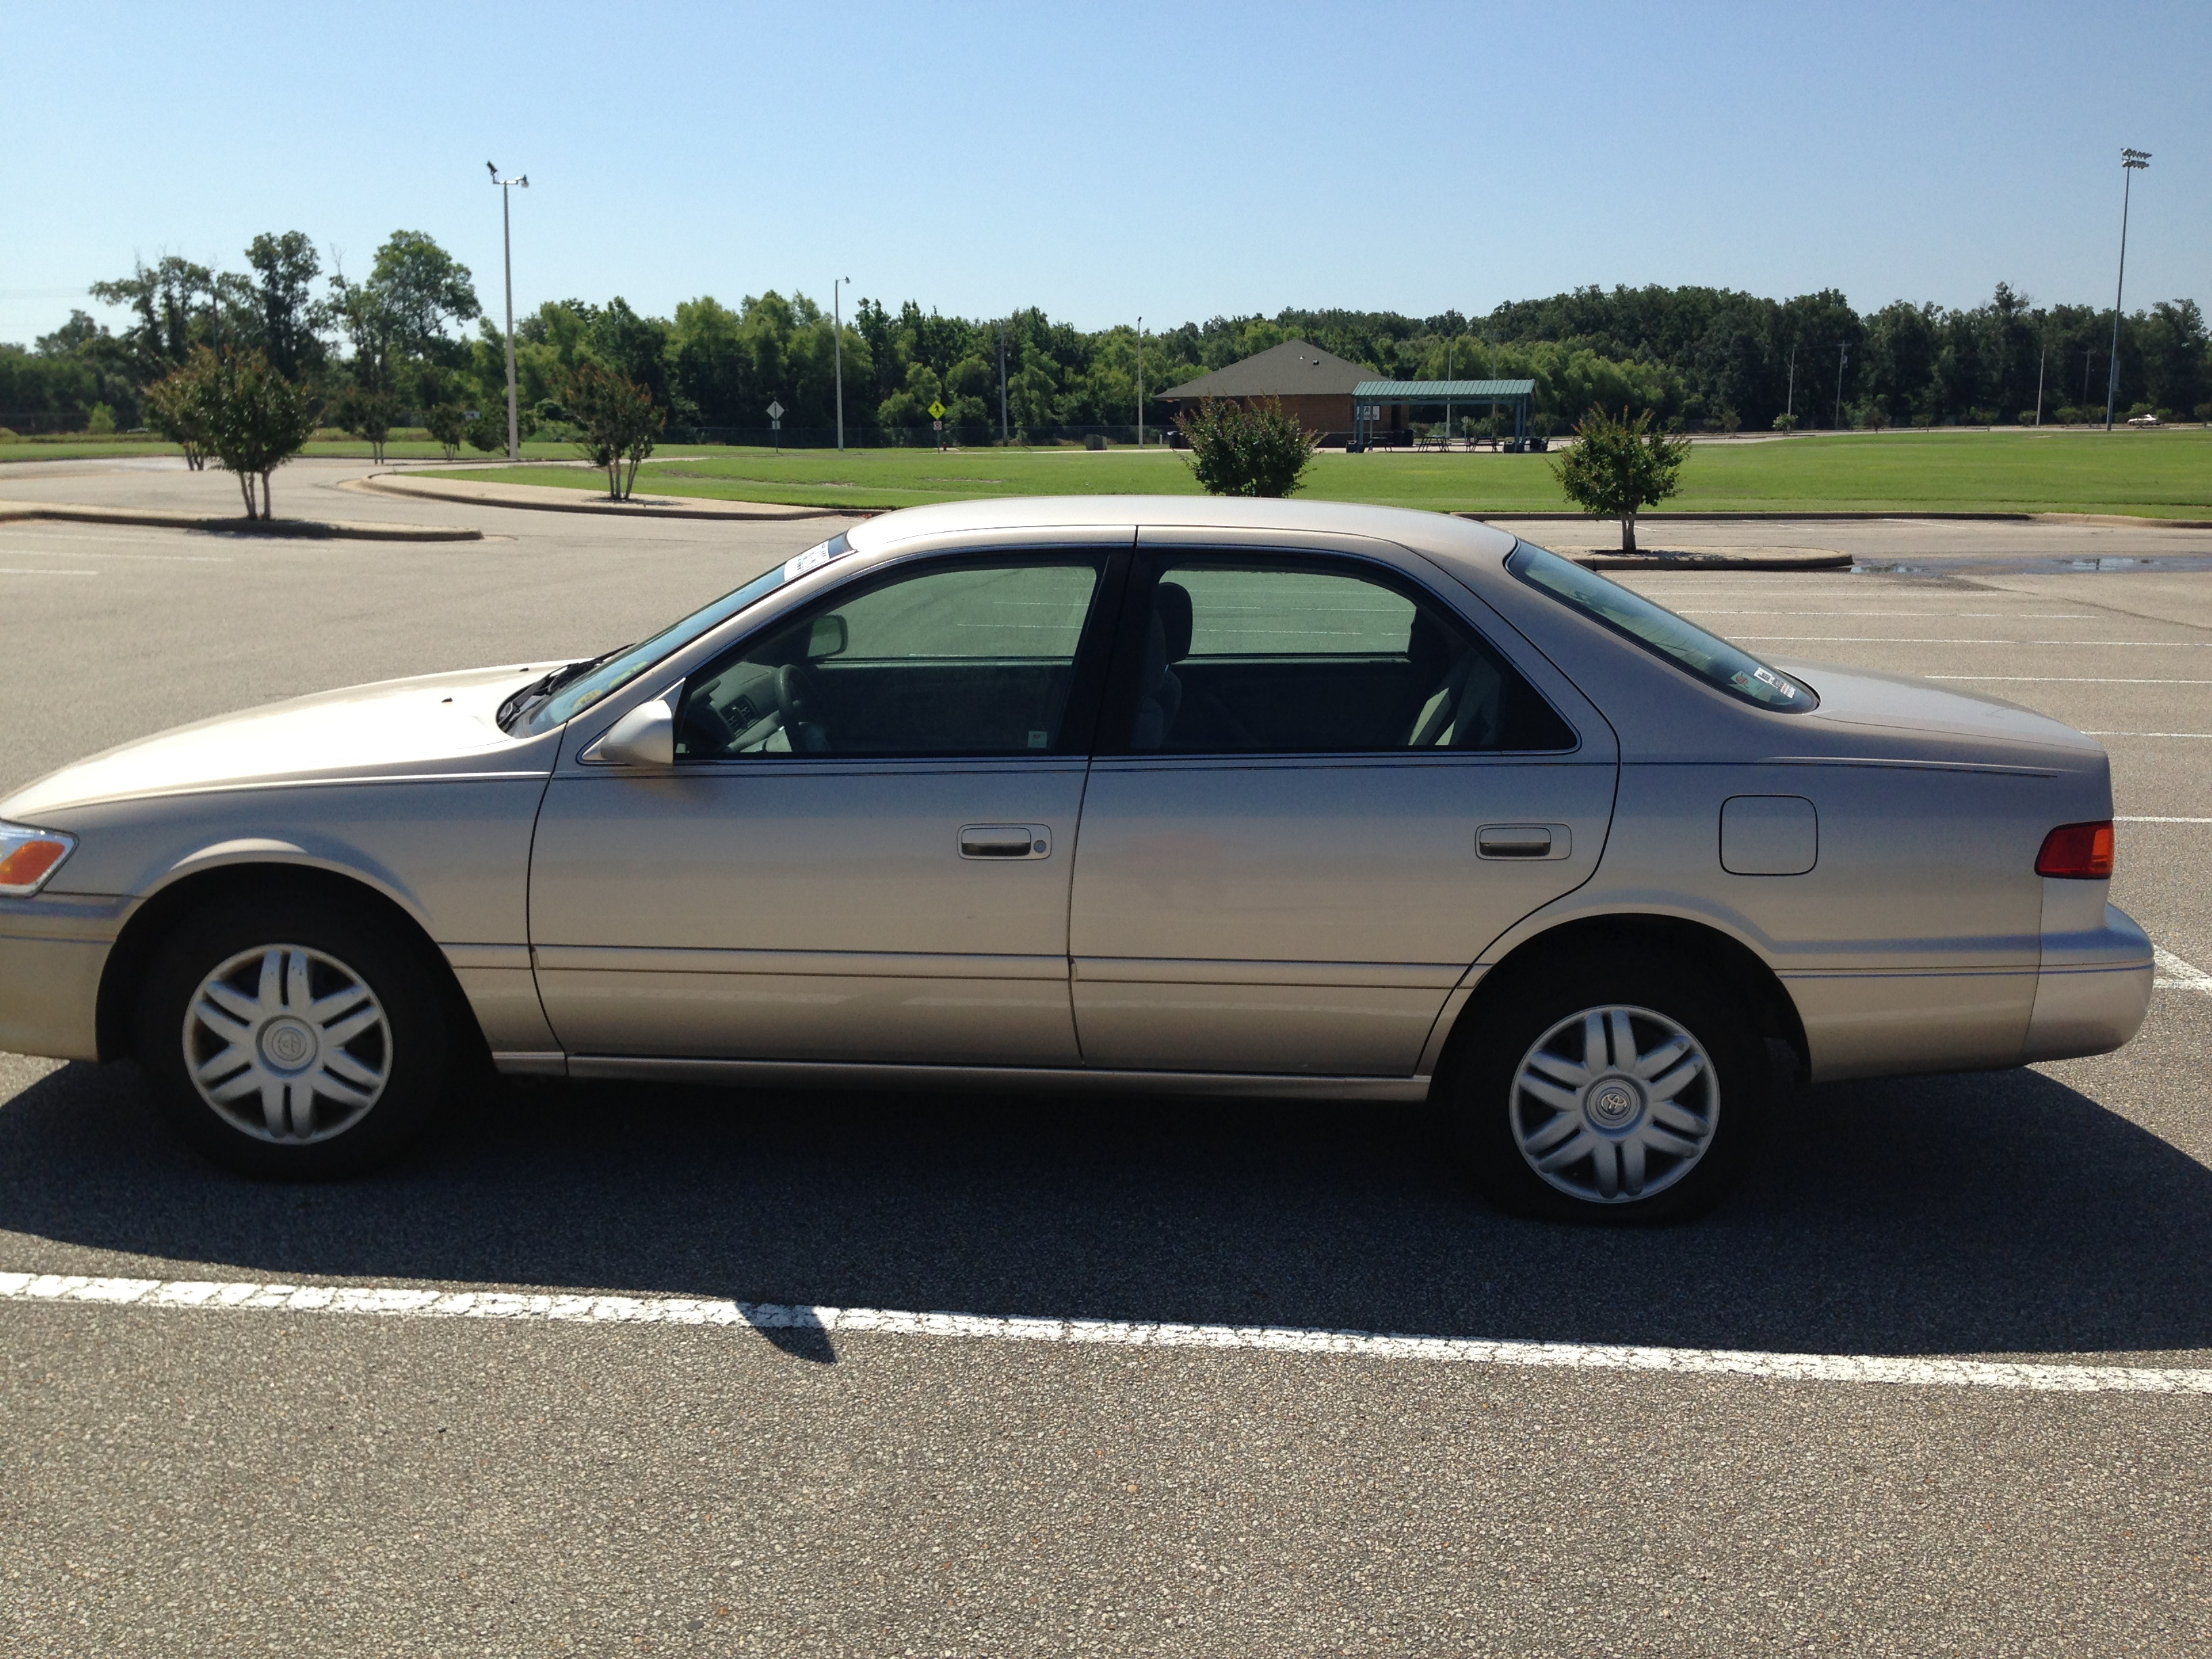 2005 Toyota Camry Le >> Gold 2001 Toyota Camry (SOLD) | J & L Auto Sales